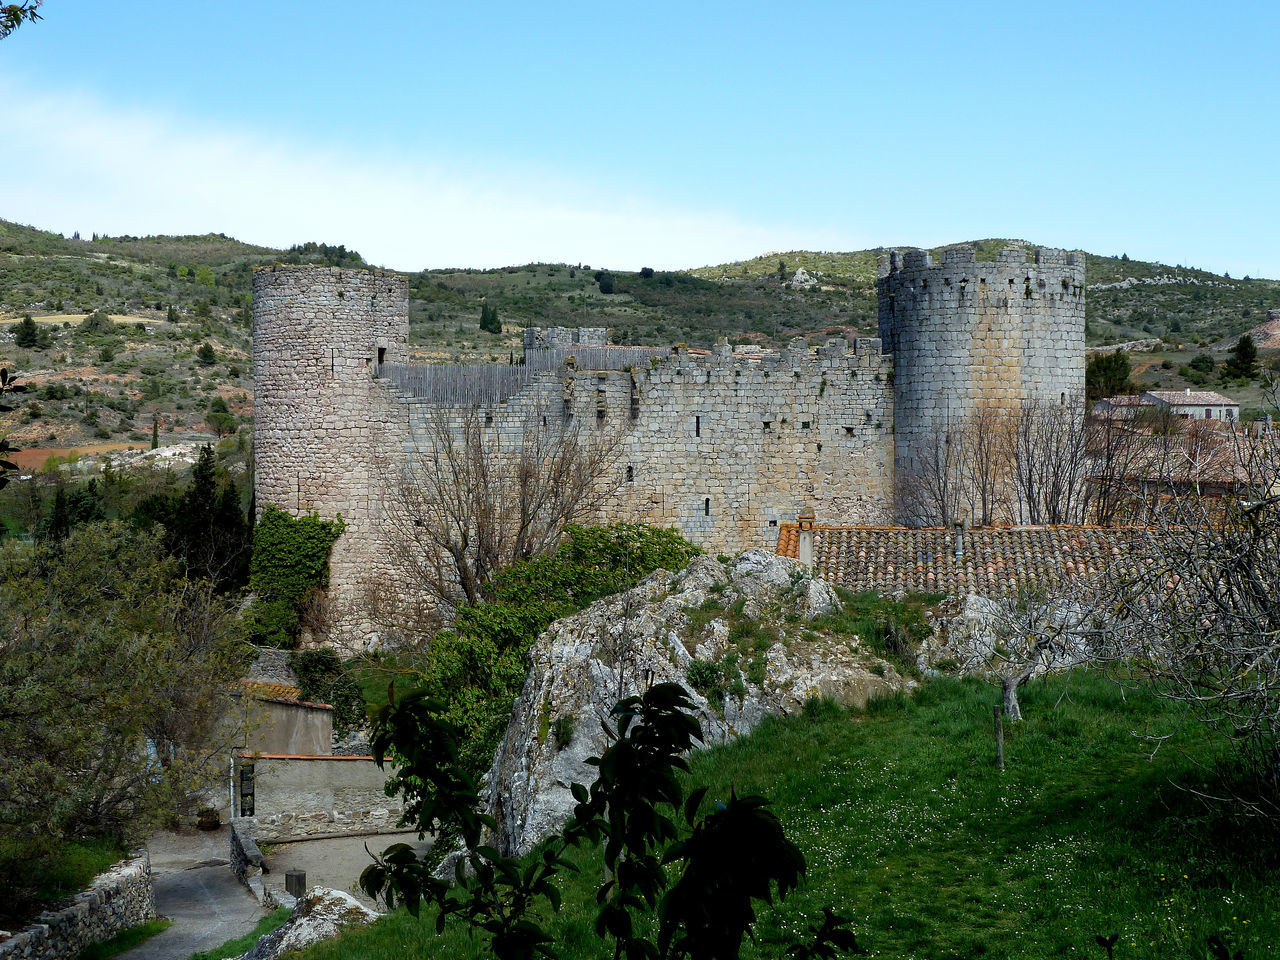 Reminds me the Old Age when the Catholic Church beside the french King were fighting against the church of Satan, the Cathars in this aera, South of france Albigensian Ancient Aragón Castle Castles Cathar Cathar Castles Cathar Country Catharism Cathars Catholic Church Citadel Citadels Crusade France King Languedoc Old Age Old Architecture Ruin Ruins Satan South Treaty Of The Pyrenees